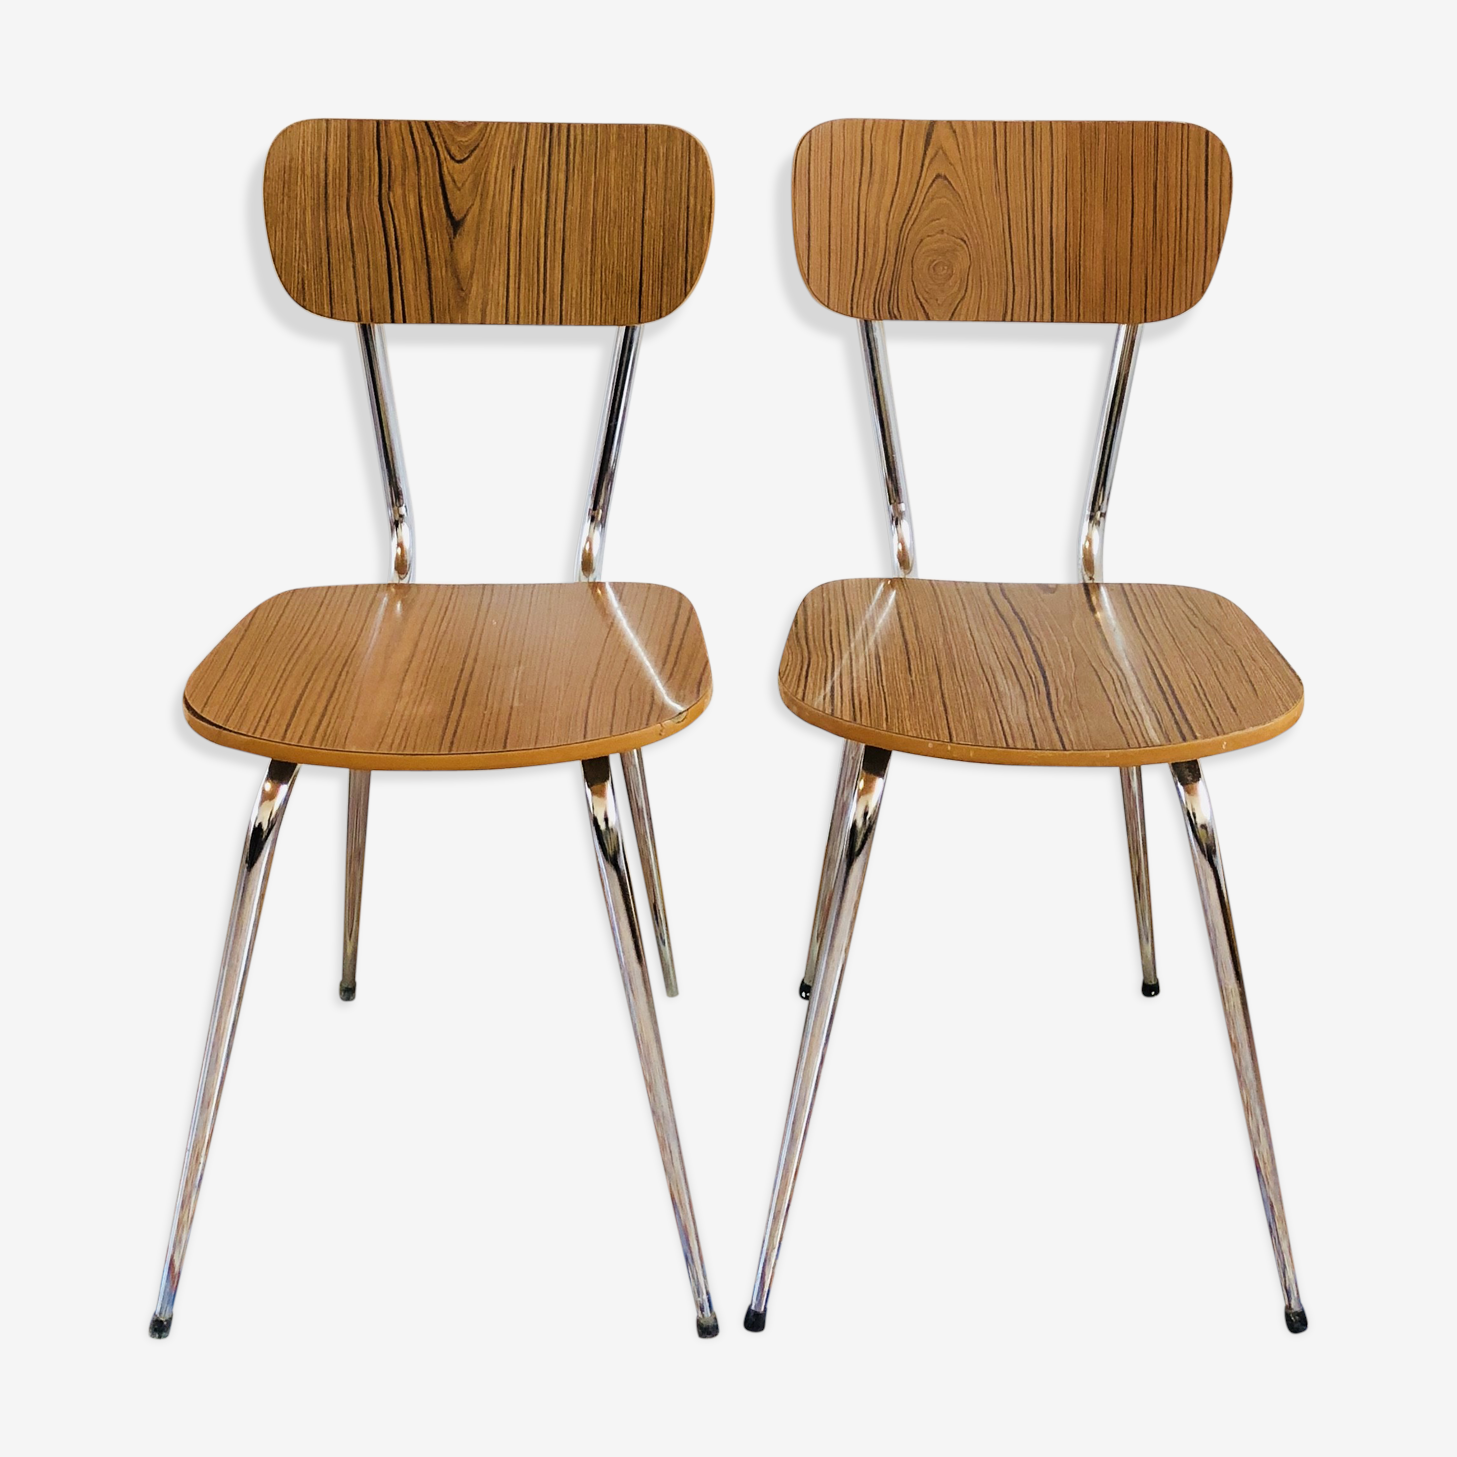 Pair of chairs in formica